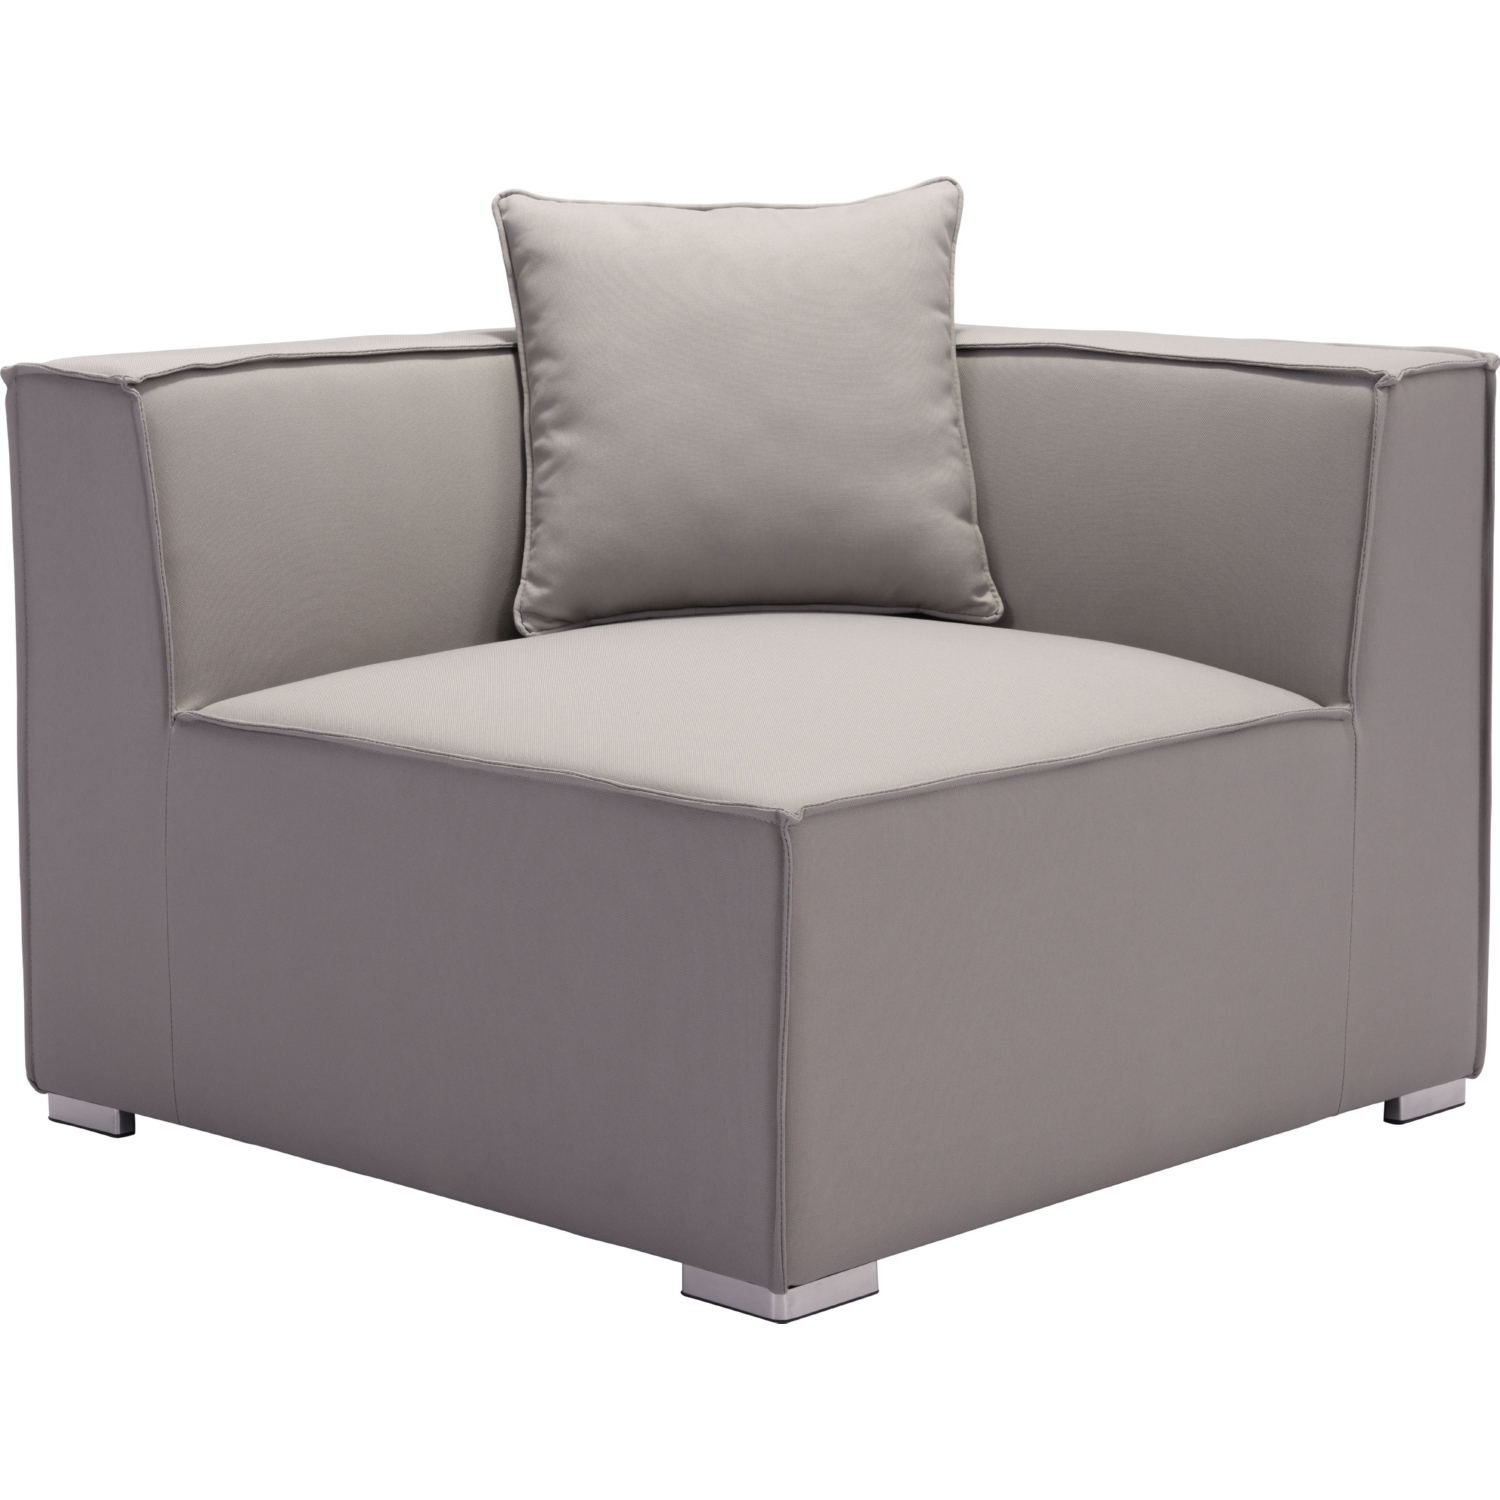 Zuo Modern Fiji Outdoor Corner Sectional Chair in Gray